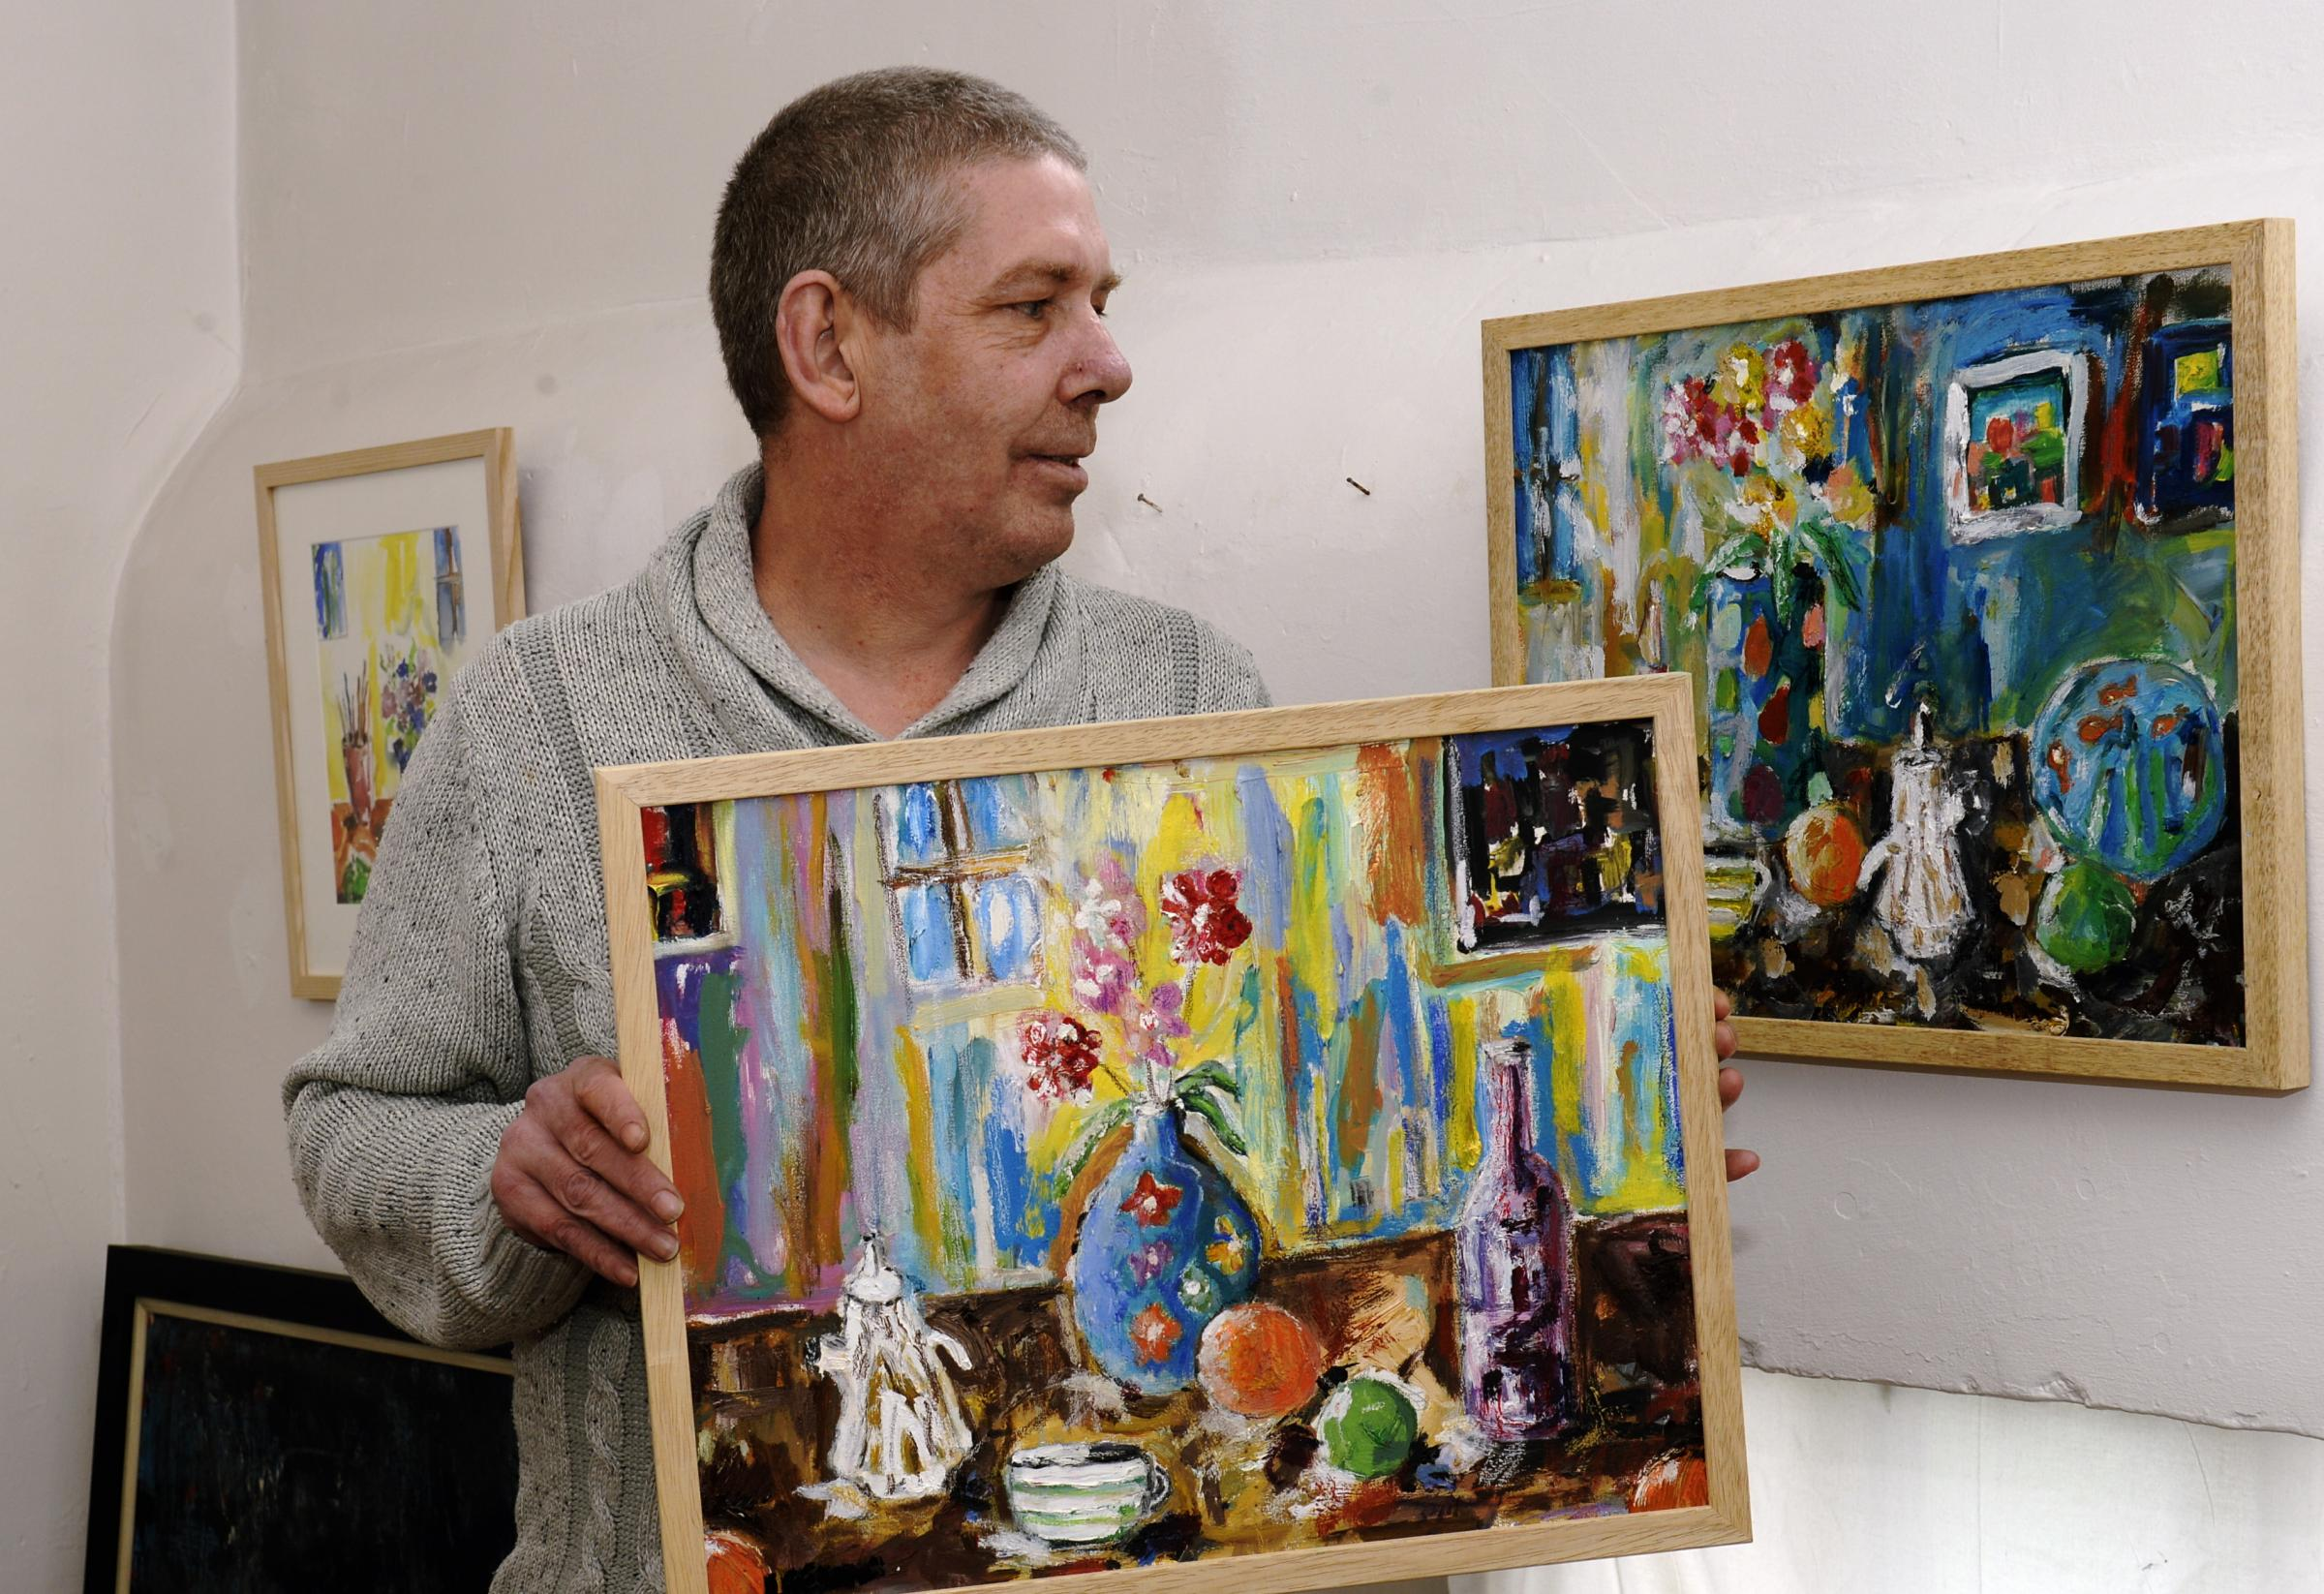 Ulverston artist Tim Leeson with some of the work in his retrospective exhibition Hiding From Myself, which runs at Kendal's Signature Gallery until May 19. Picture: JON GRANGER